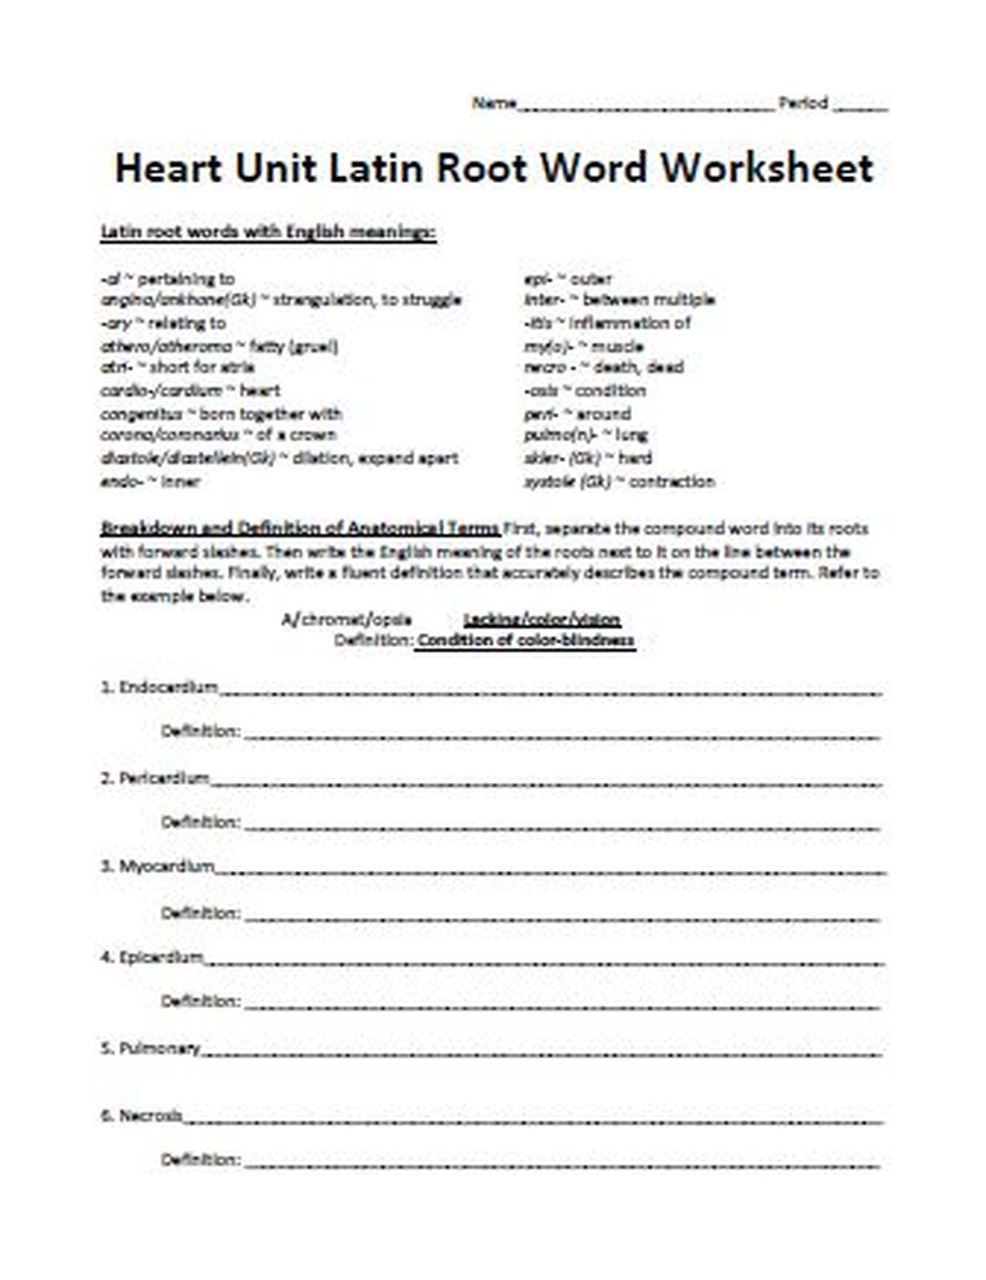 Root Word Worksheets Middle School Heart Unit Latin Root Word Worksheet Free Amped Up Learning